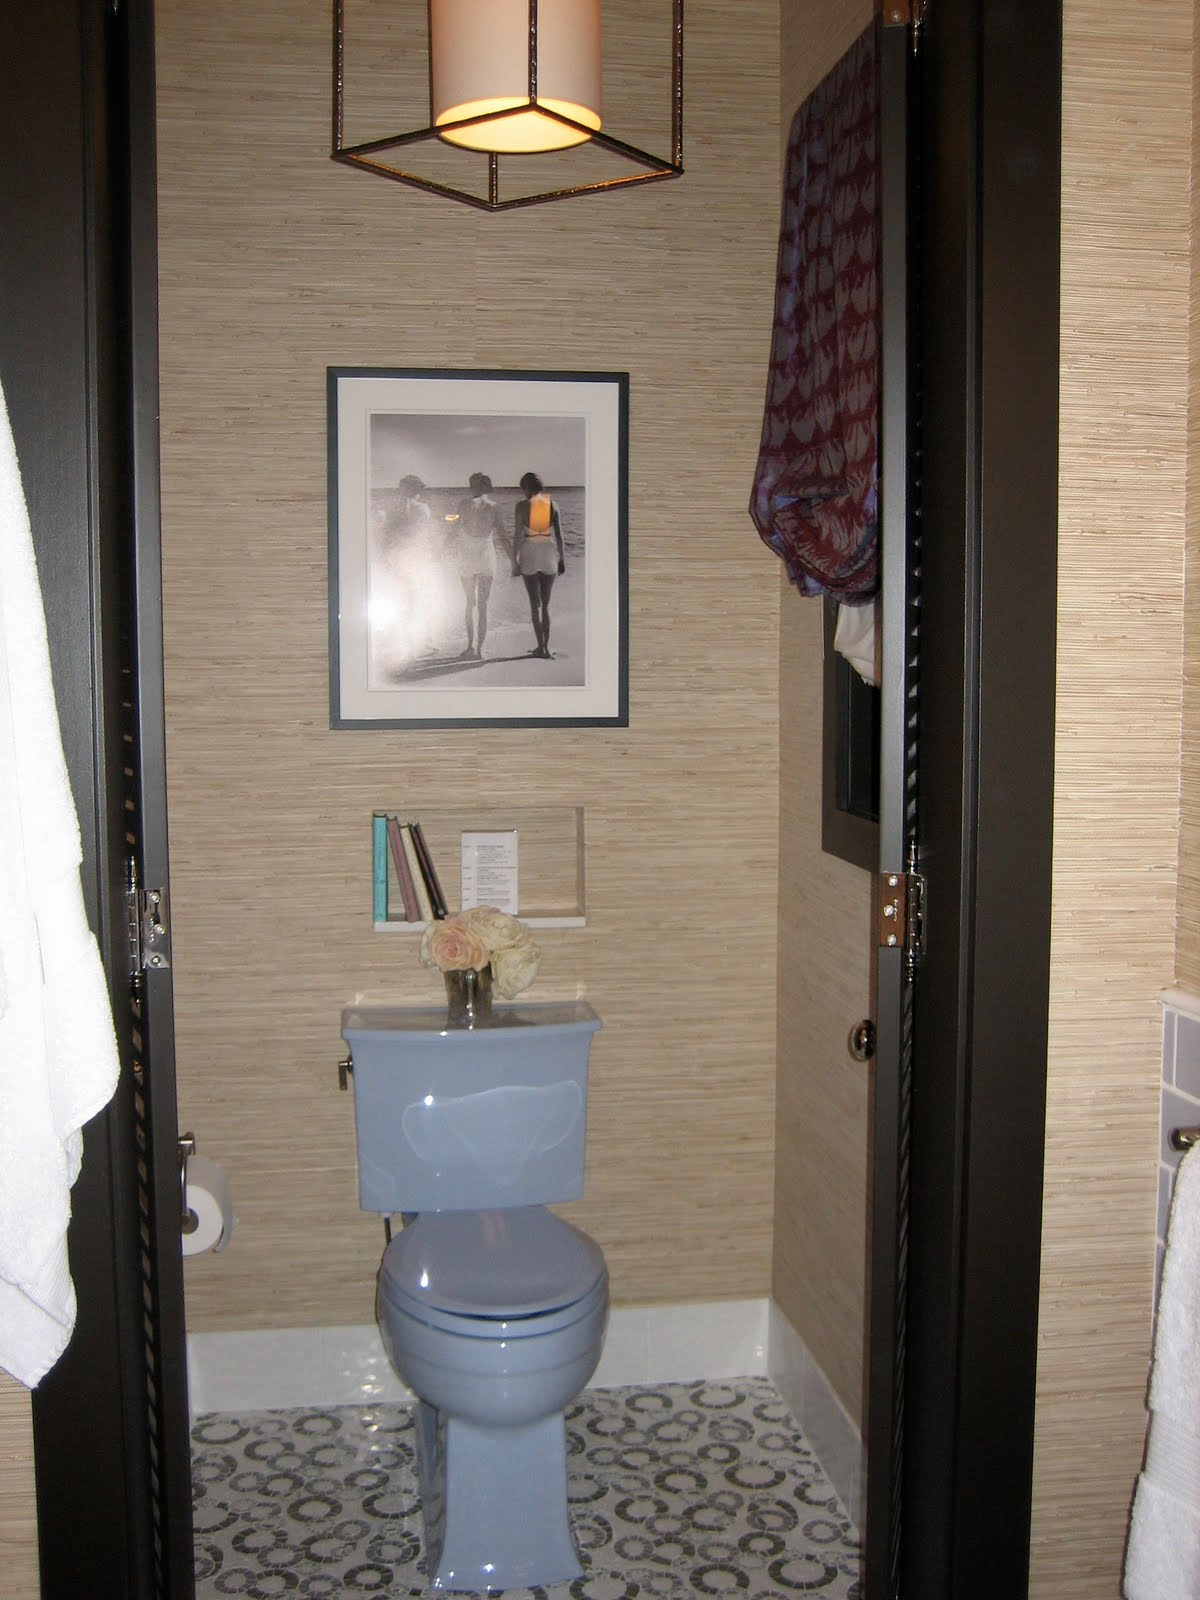 Toilet design toilet design room design ideas room for Simple toilet design